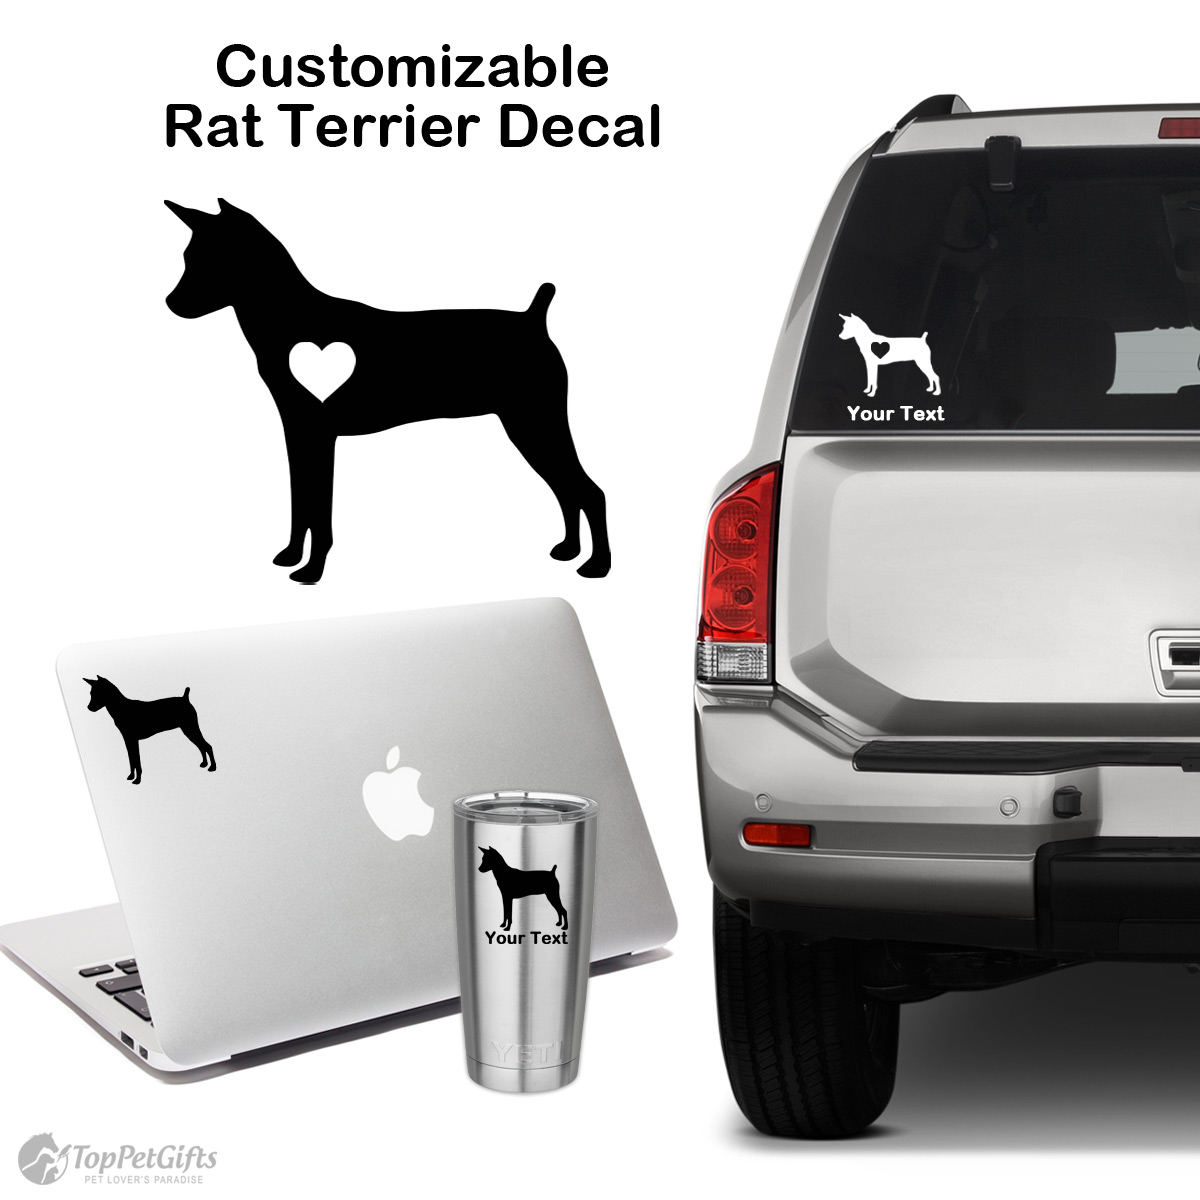 Personalized Rat Terrier Decal